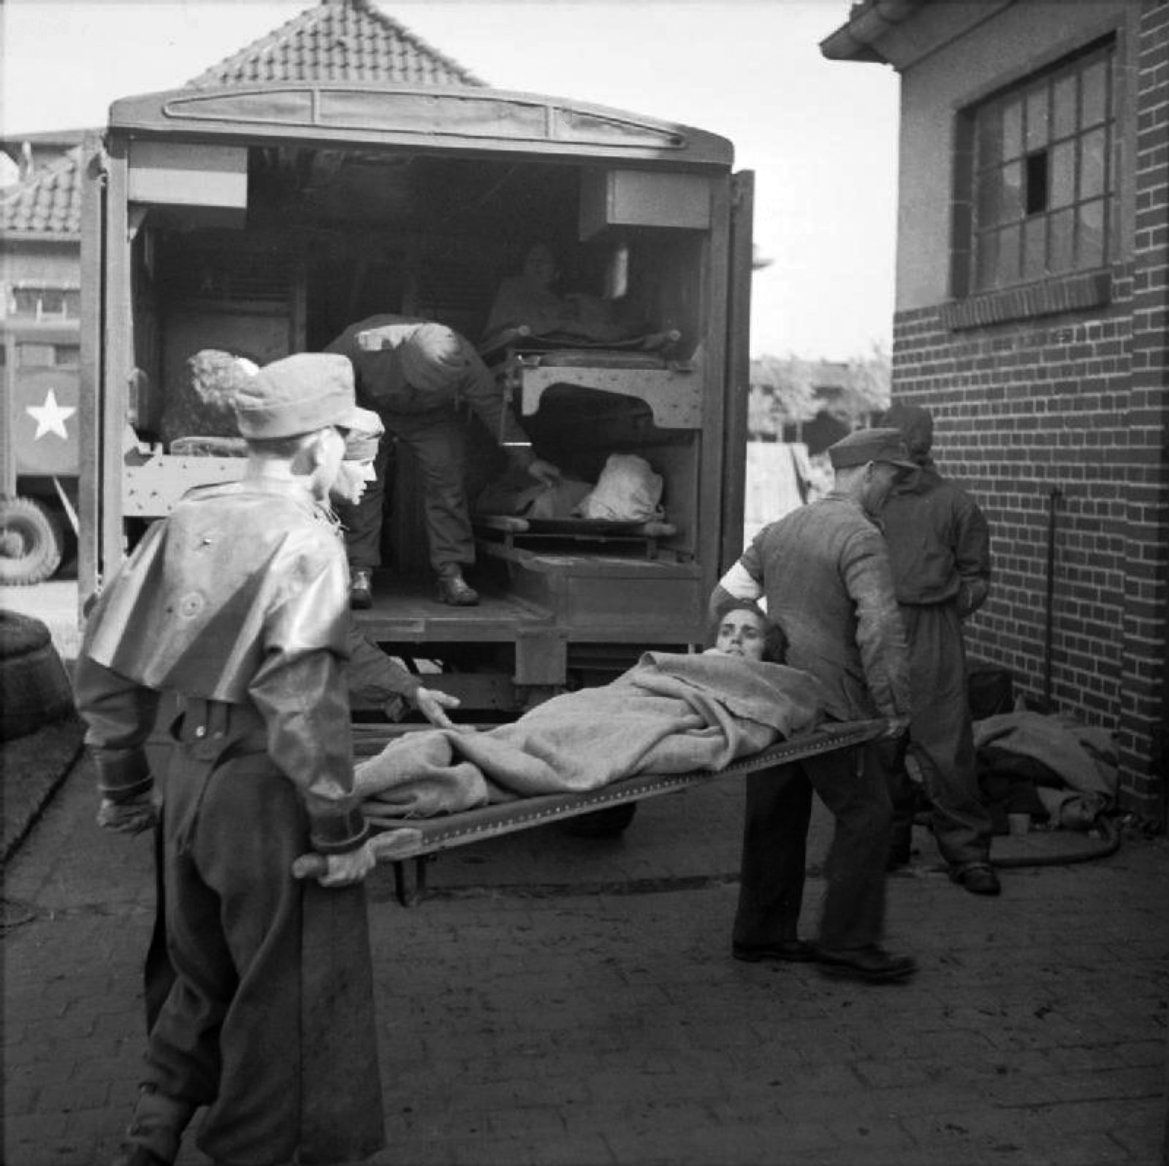 "German POWs and British Royal Army Medical Corps orderlies unload ill former inmates at the cleansing station at Hohne Barracks, which acquired the nickname the ""Human Laundry"" following the British liberation of Bergen-Belsen concentration camp. Stable Blocks were converted into improvised decontamination facilities. Here, former prisoners would arrive, be shaved, washed and deloused prior to being moved into the newly established hospitals within Bergen-Belsen Barracks. Bergen-Belsen…"